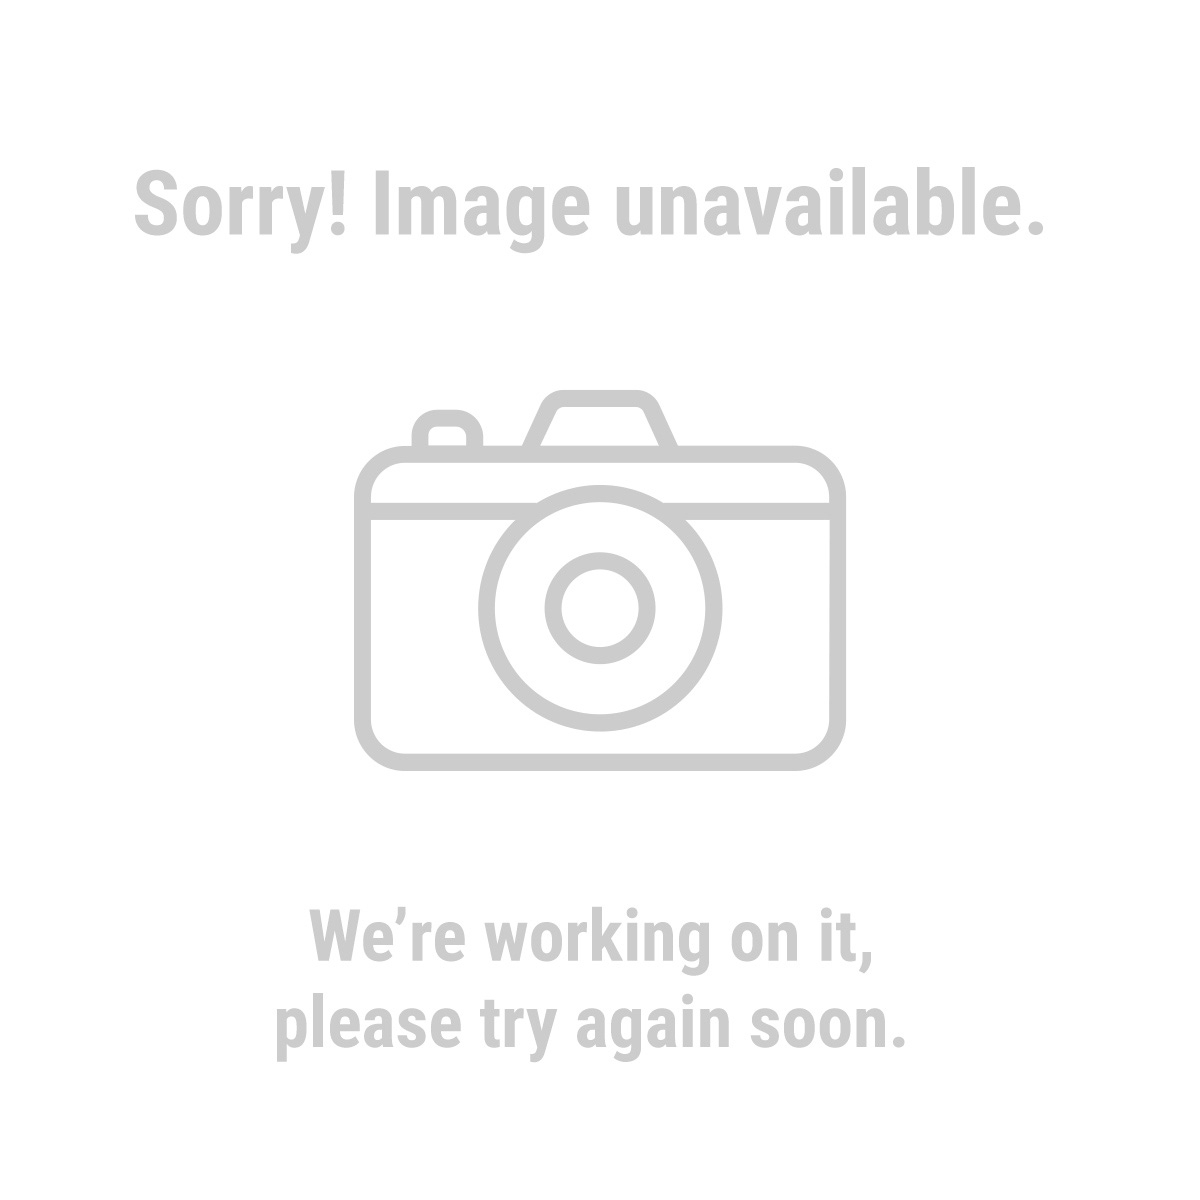 HFT® 61860 25 ft. x 14 Gauge Outdoor Extension Cord